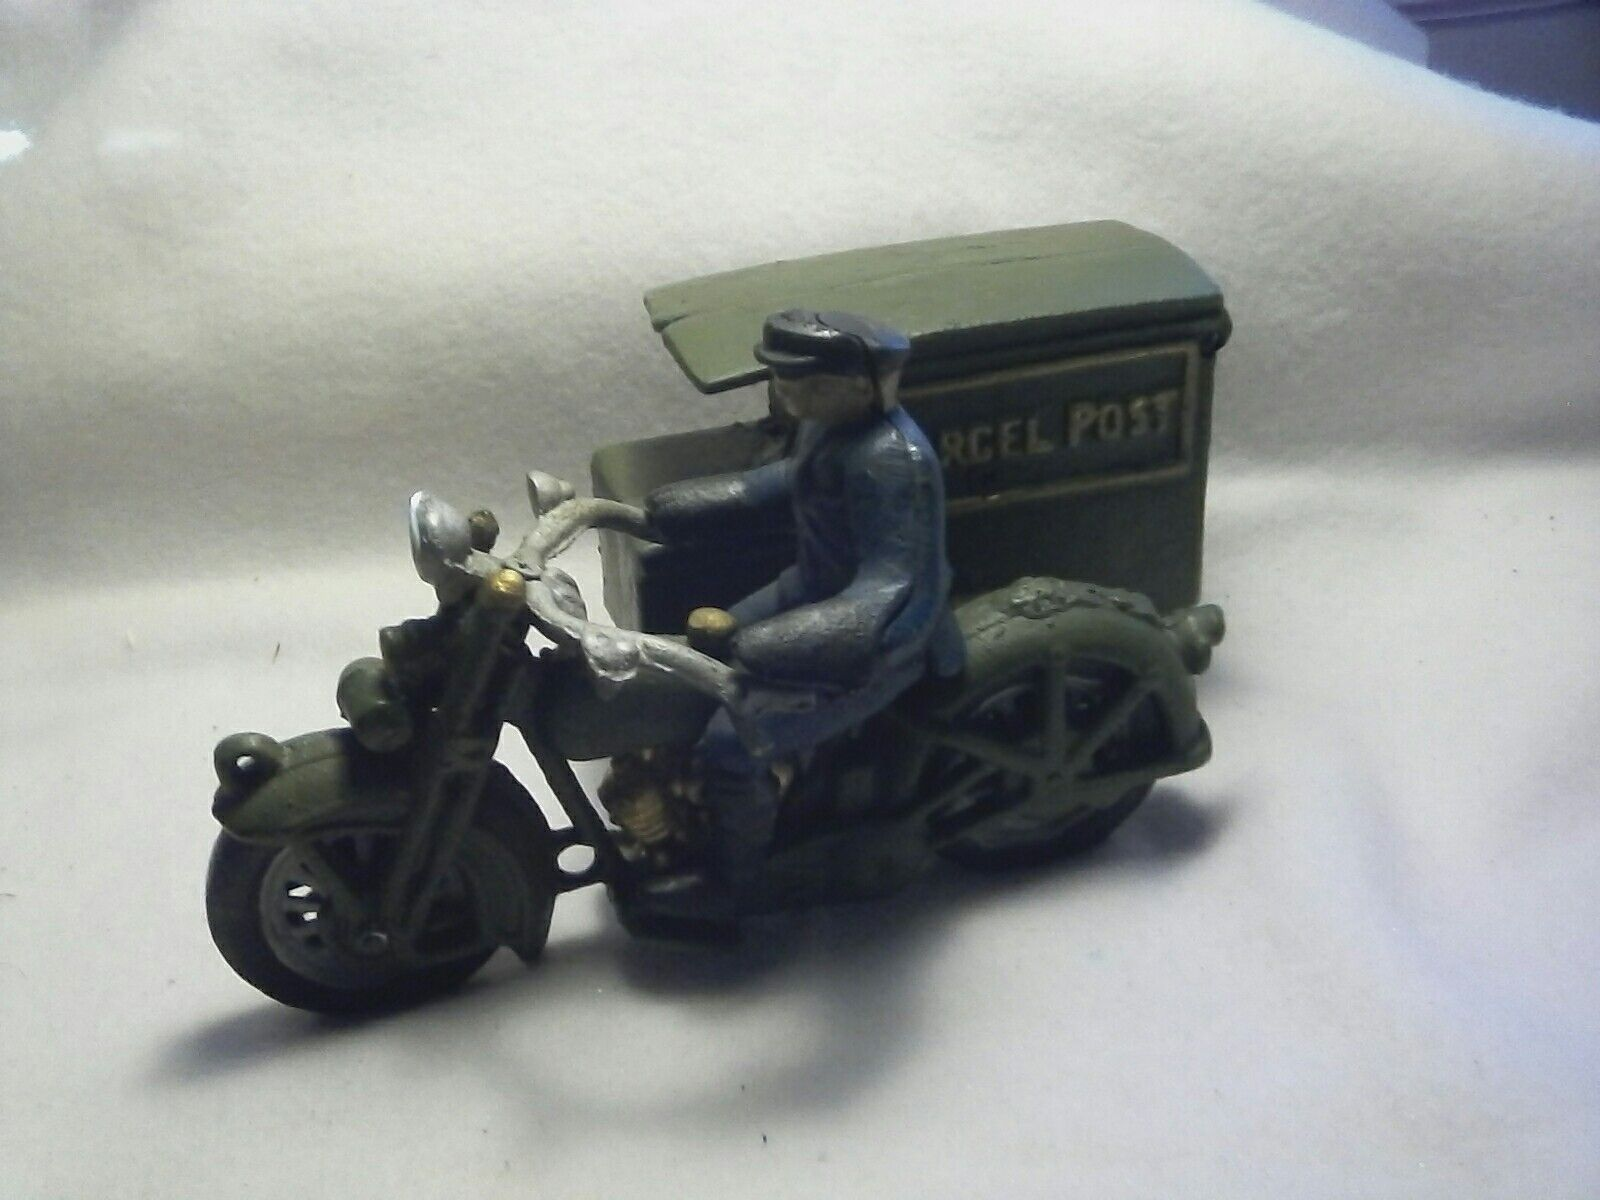 VINTAGE CAST IRON MOTORCYCLE POSTMAN HARLEY INDIAN Unmarked